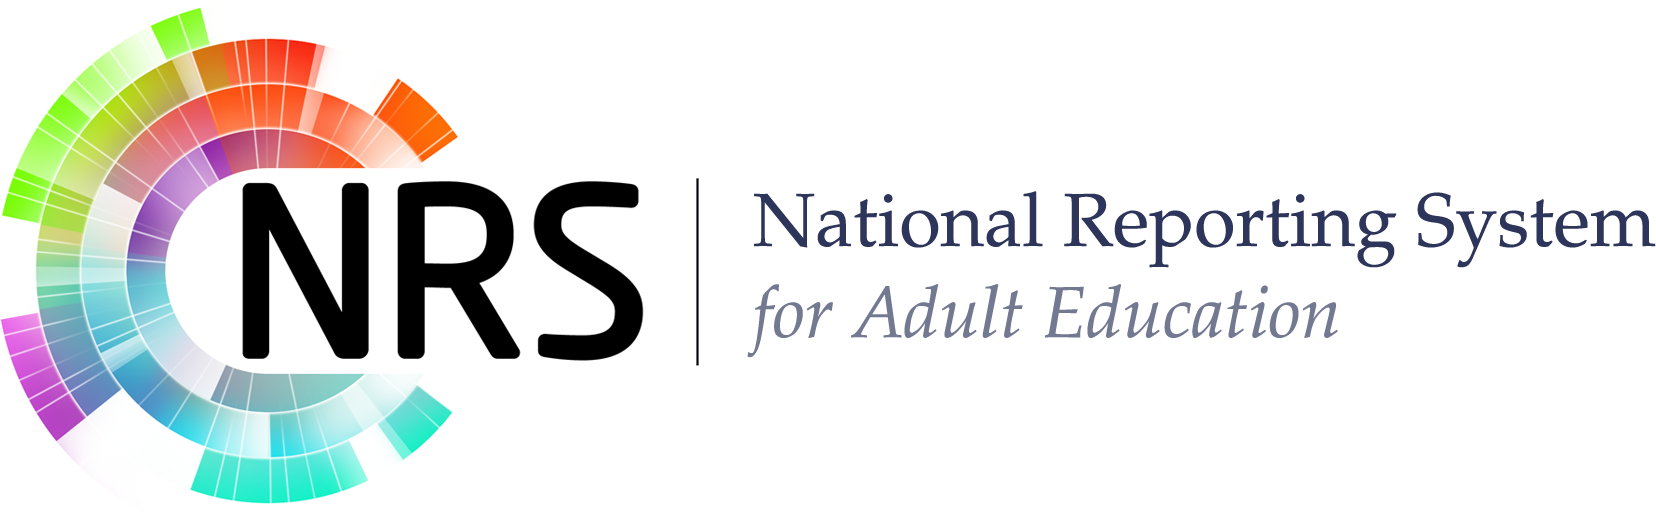 National Reporting System for Adult Education home link